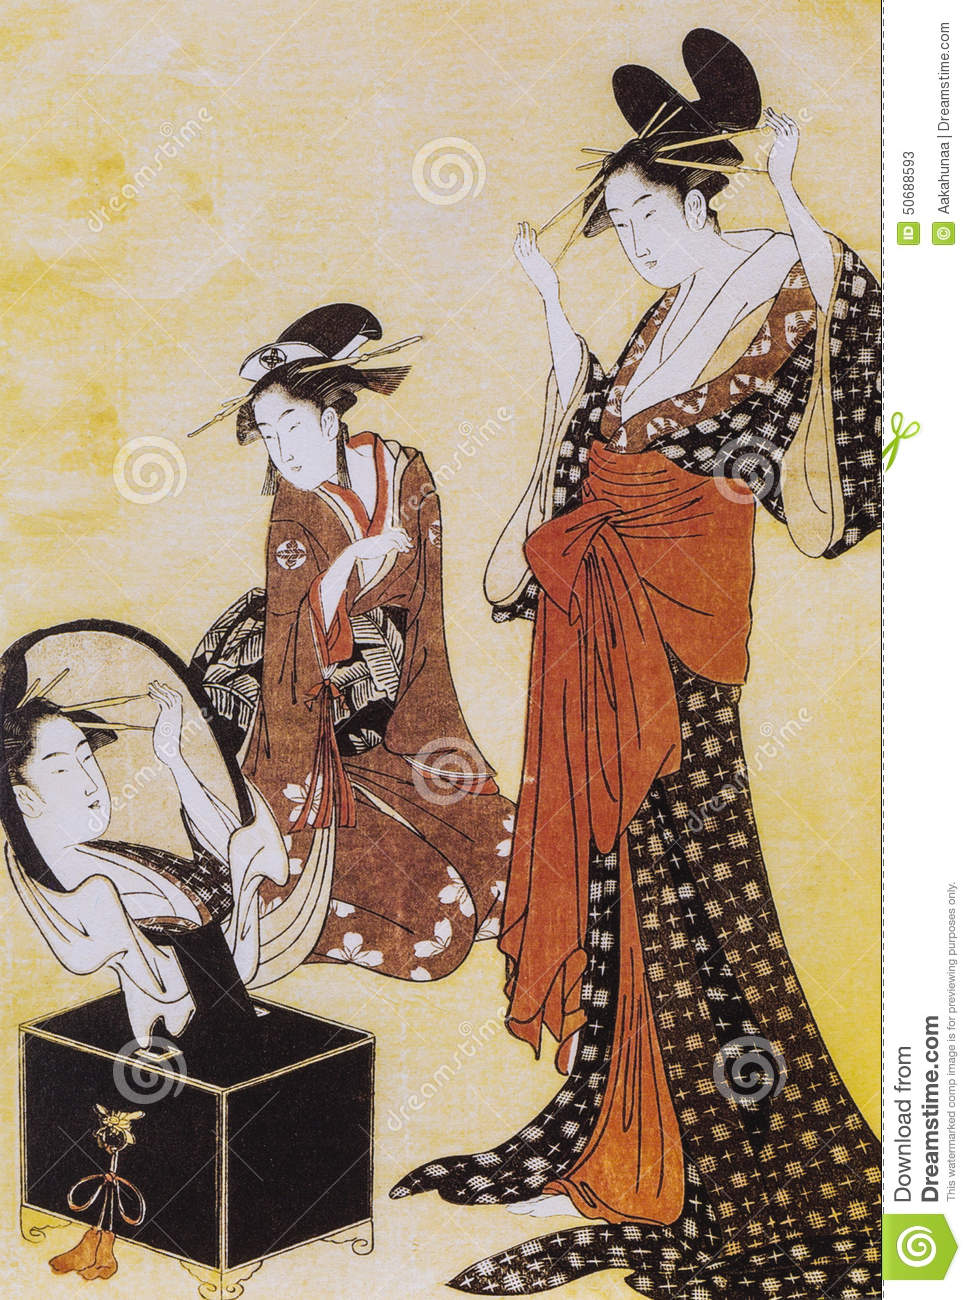 Ancient Japanese Sex Drawings 17